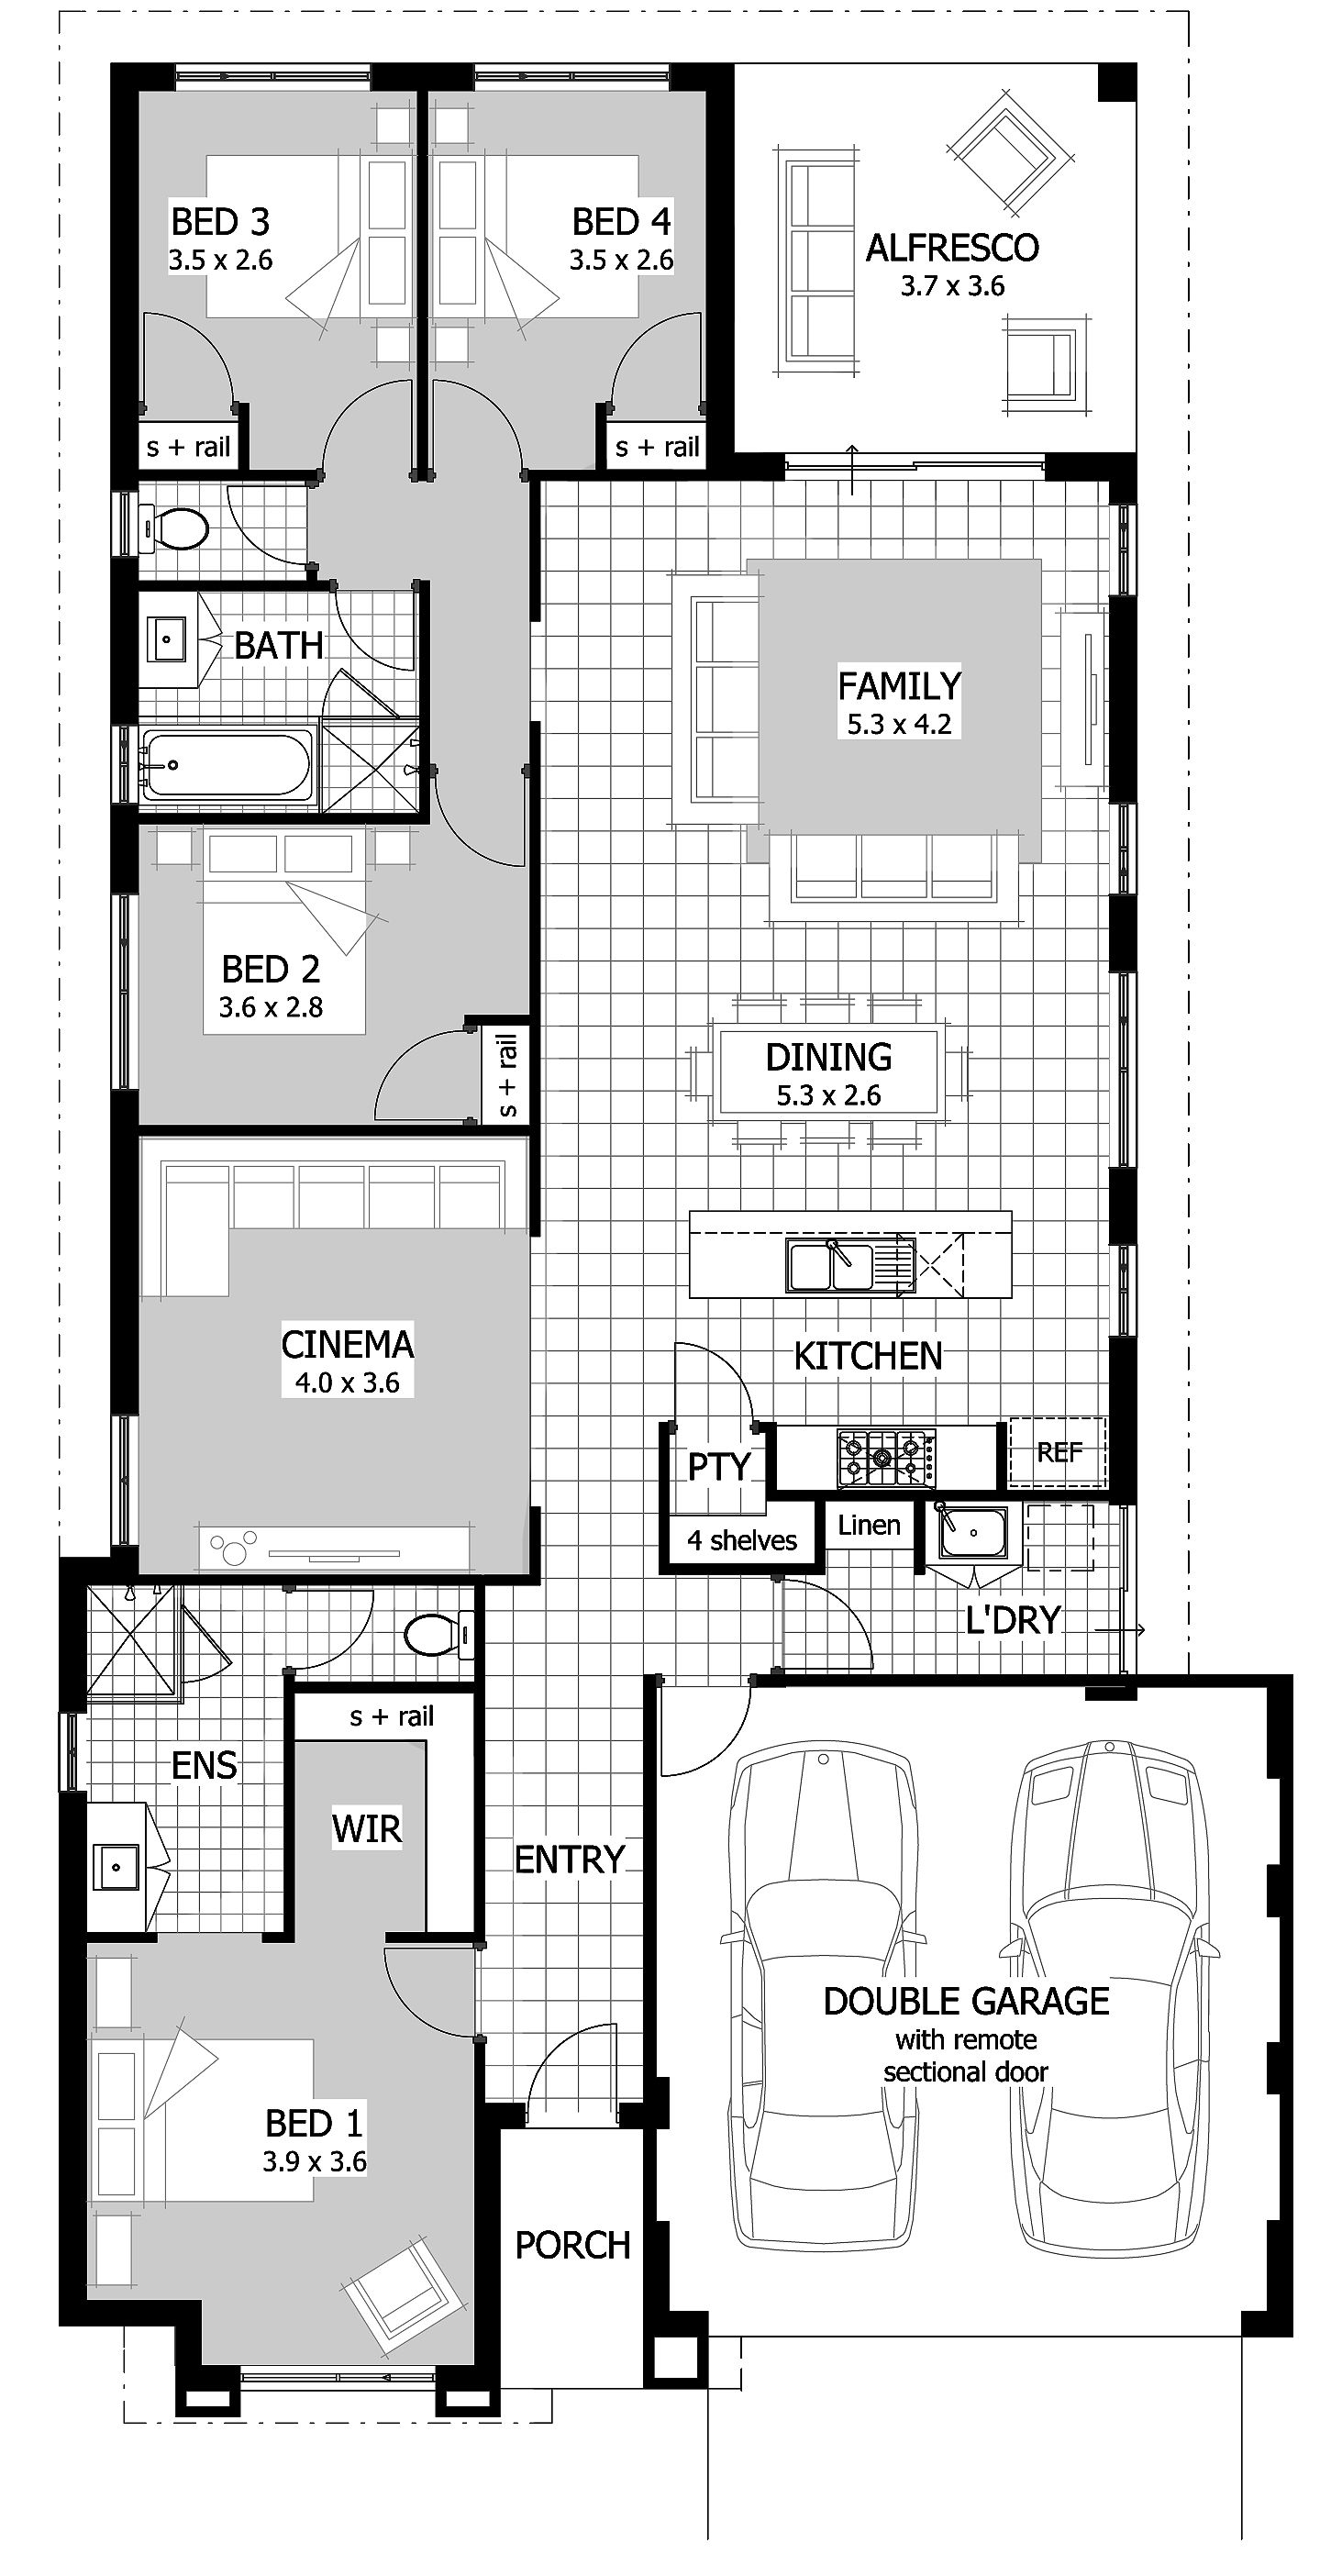 Home And Land Packages Celebration Homes Small Villa Floor Plans Bedroom House Plans